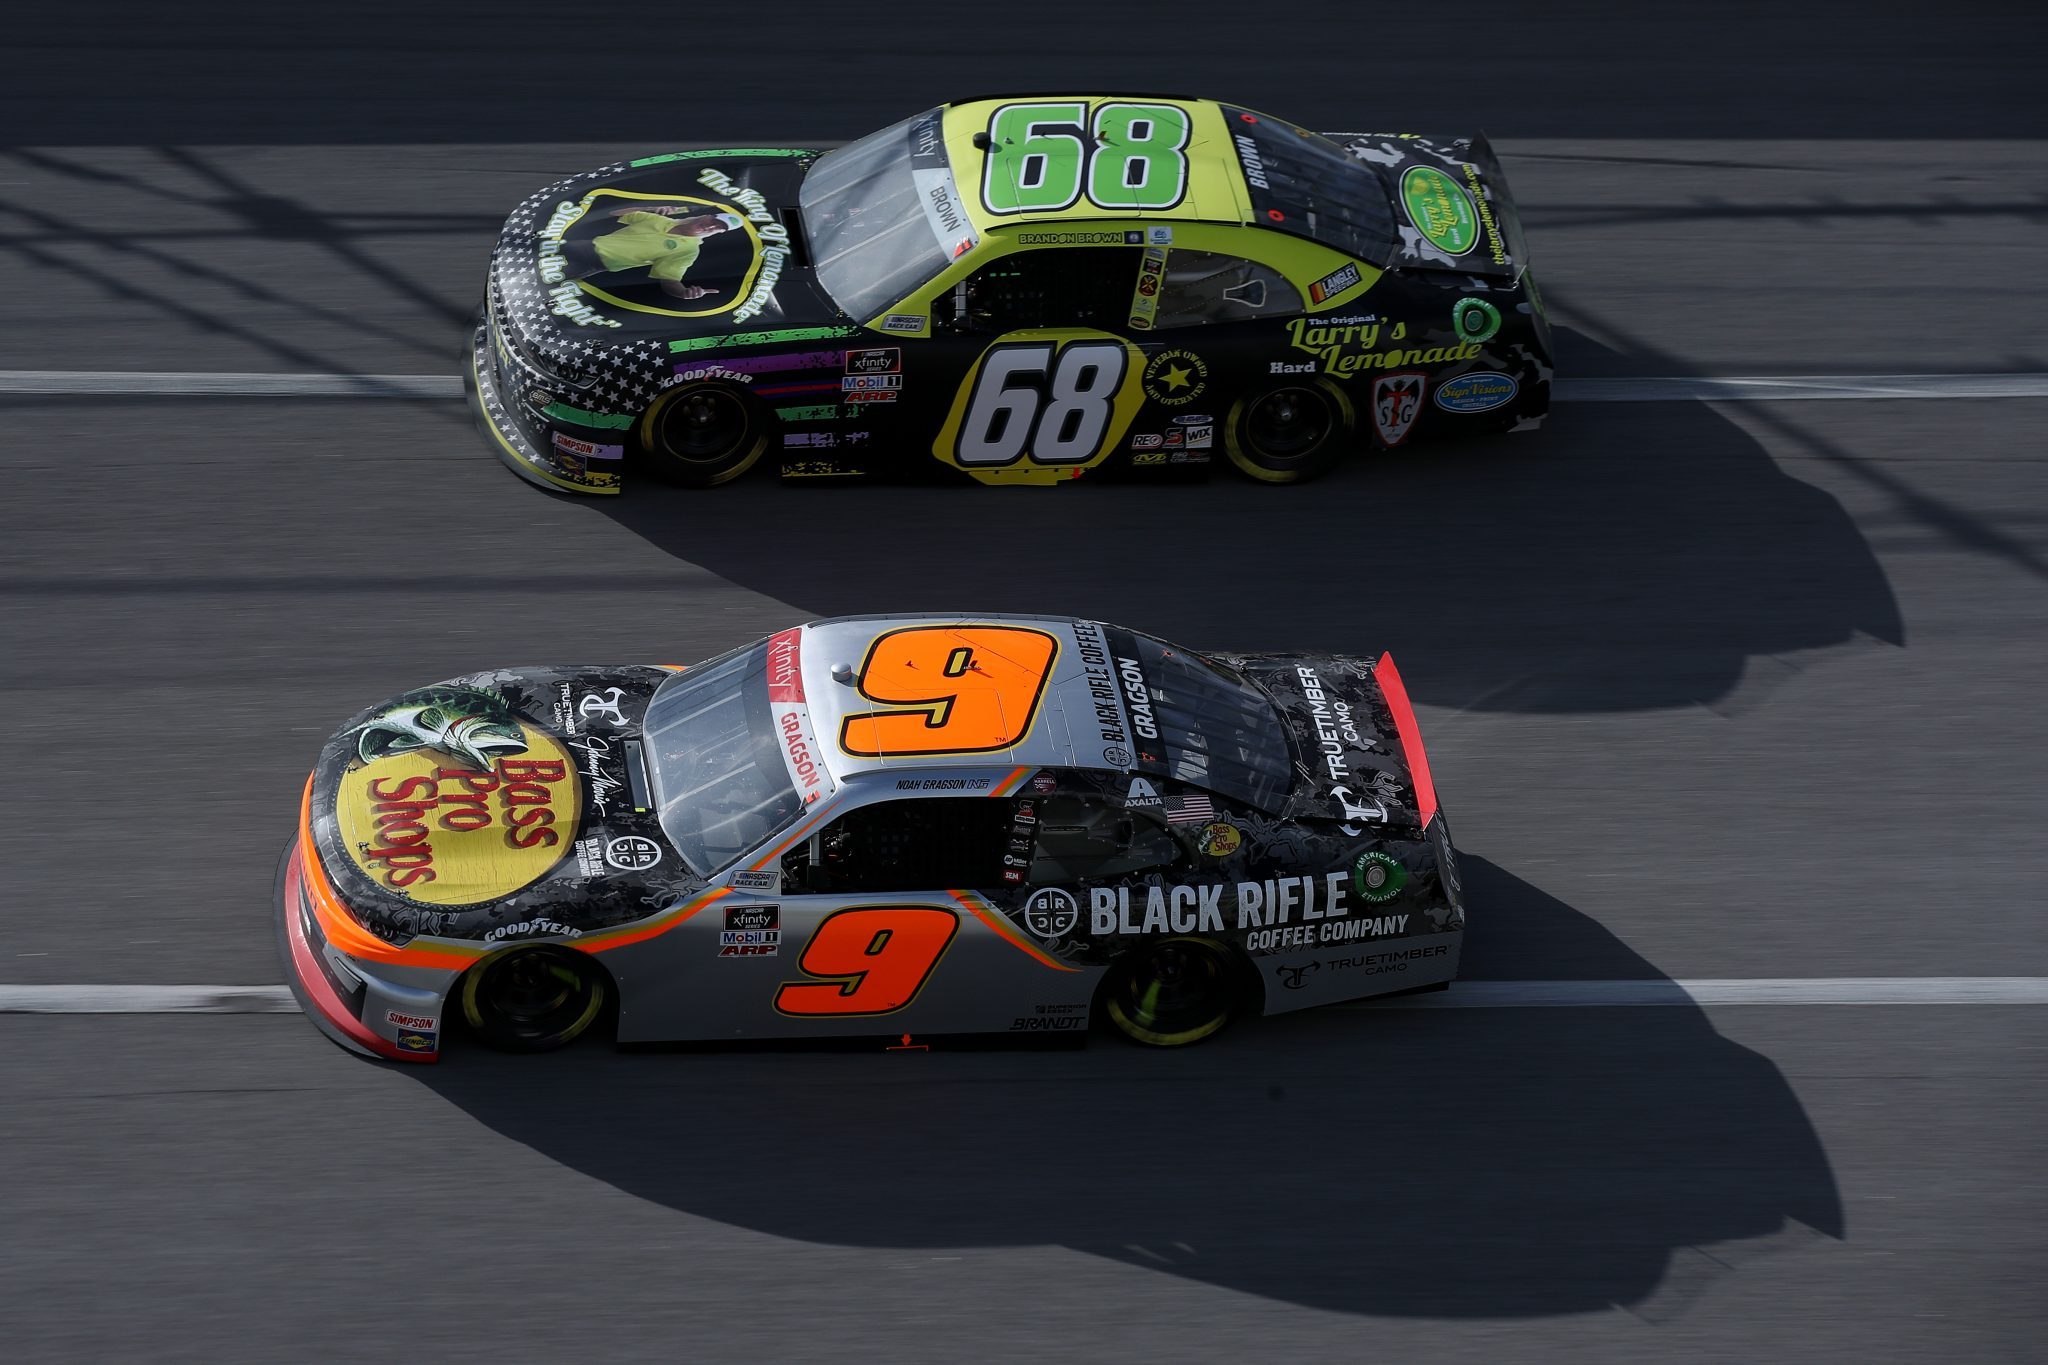 TALLADEGA, ALABAMA - APRIL 24: Noah Gragson, driver of the #9 Bass Pro Shops/True Timber/BRCC Chevrolet, and Brandon Brown, driver of the #68 Original Larry's Hard Lemonade Chevrolet, race during the NASCAR Xfinity Series Ag-Pro 300 at Talladega Superspeedway on April 24, 2021 in Talladega, Alabama. (Photo by Sean Gardner/Getty Images)   Getty Images